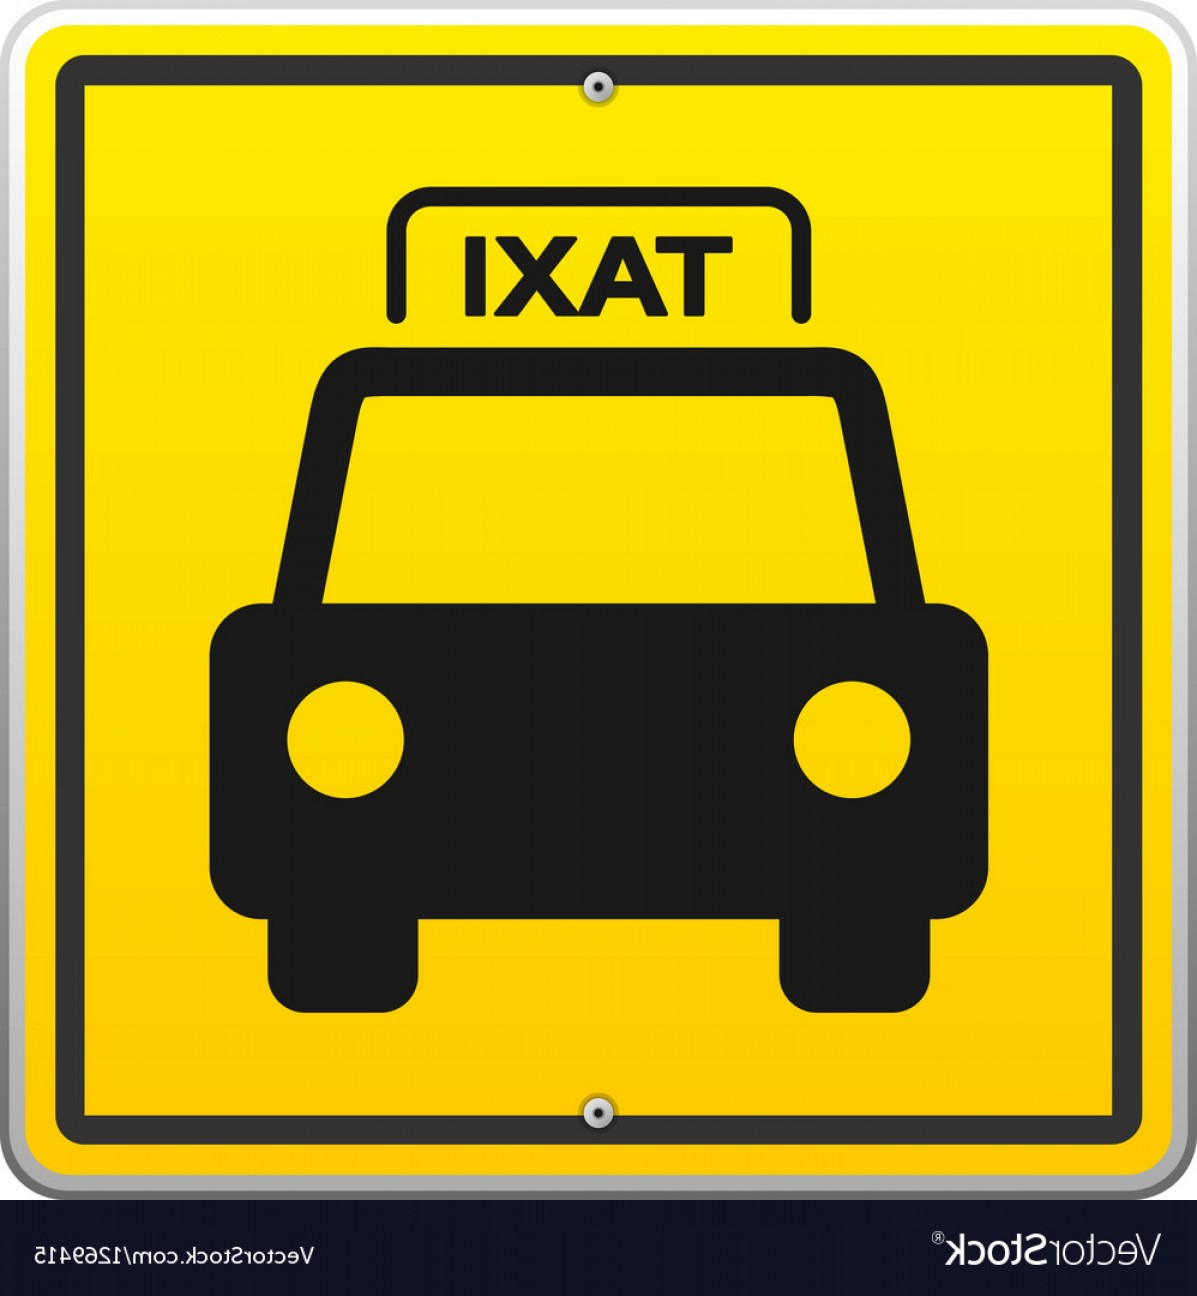 New York Taxi Cab Vector: Taxi Sign In New York Vector